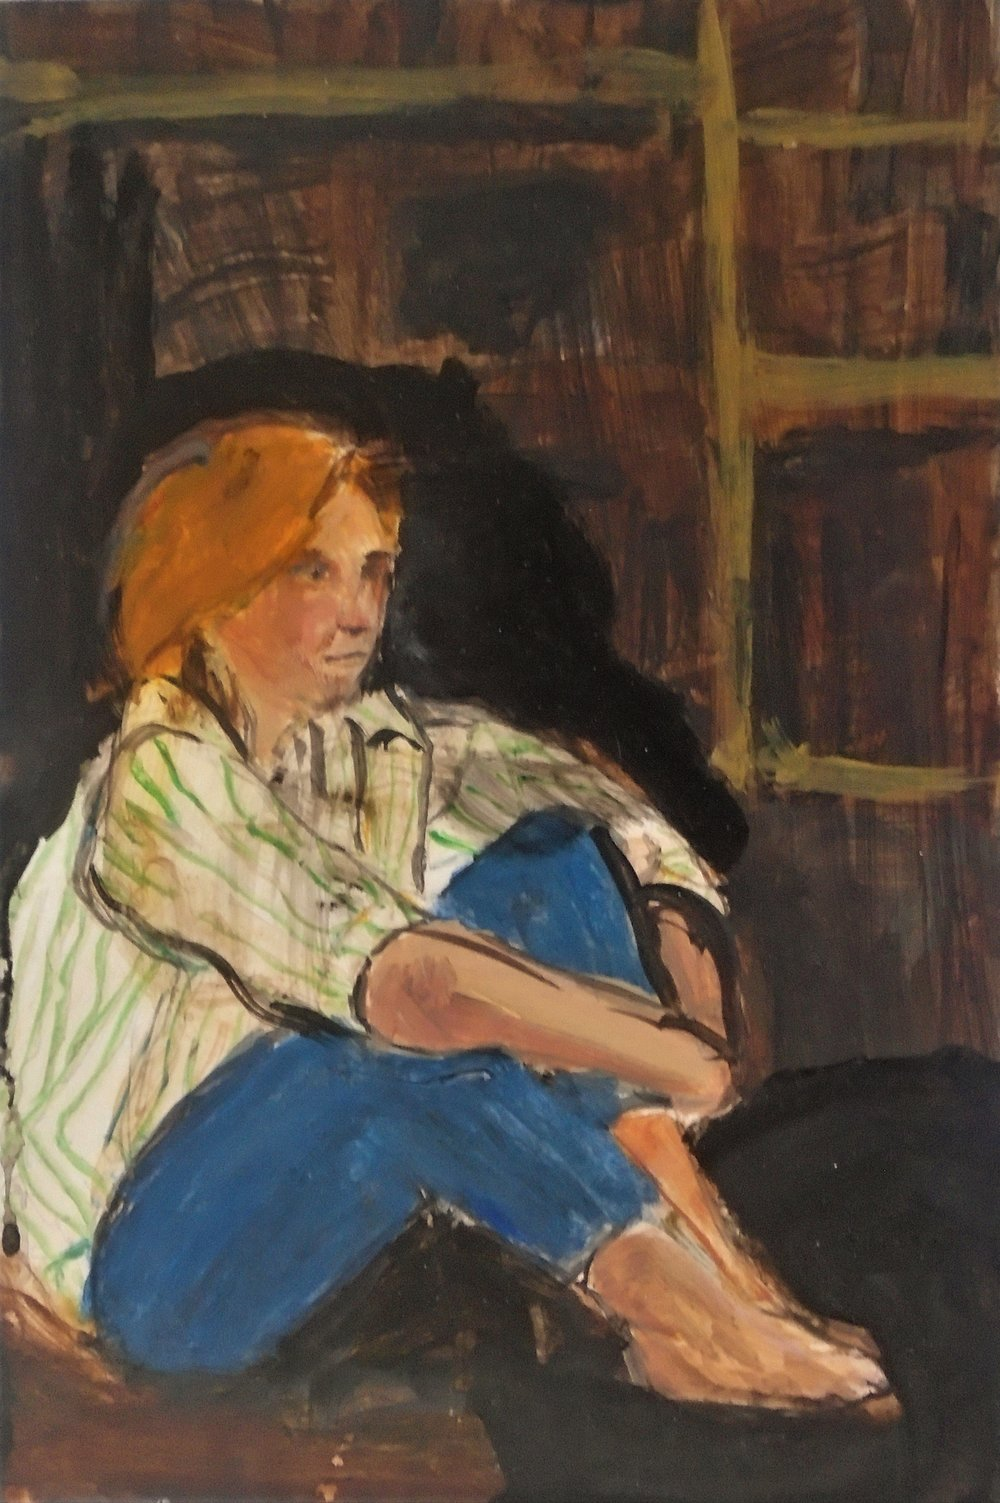 Julie, 1986 (painted 2012)